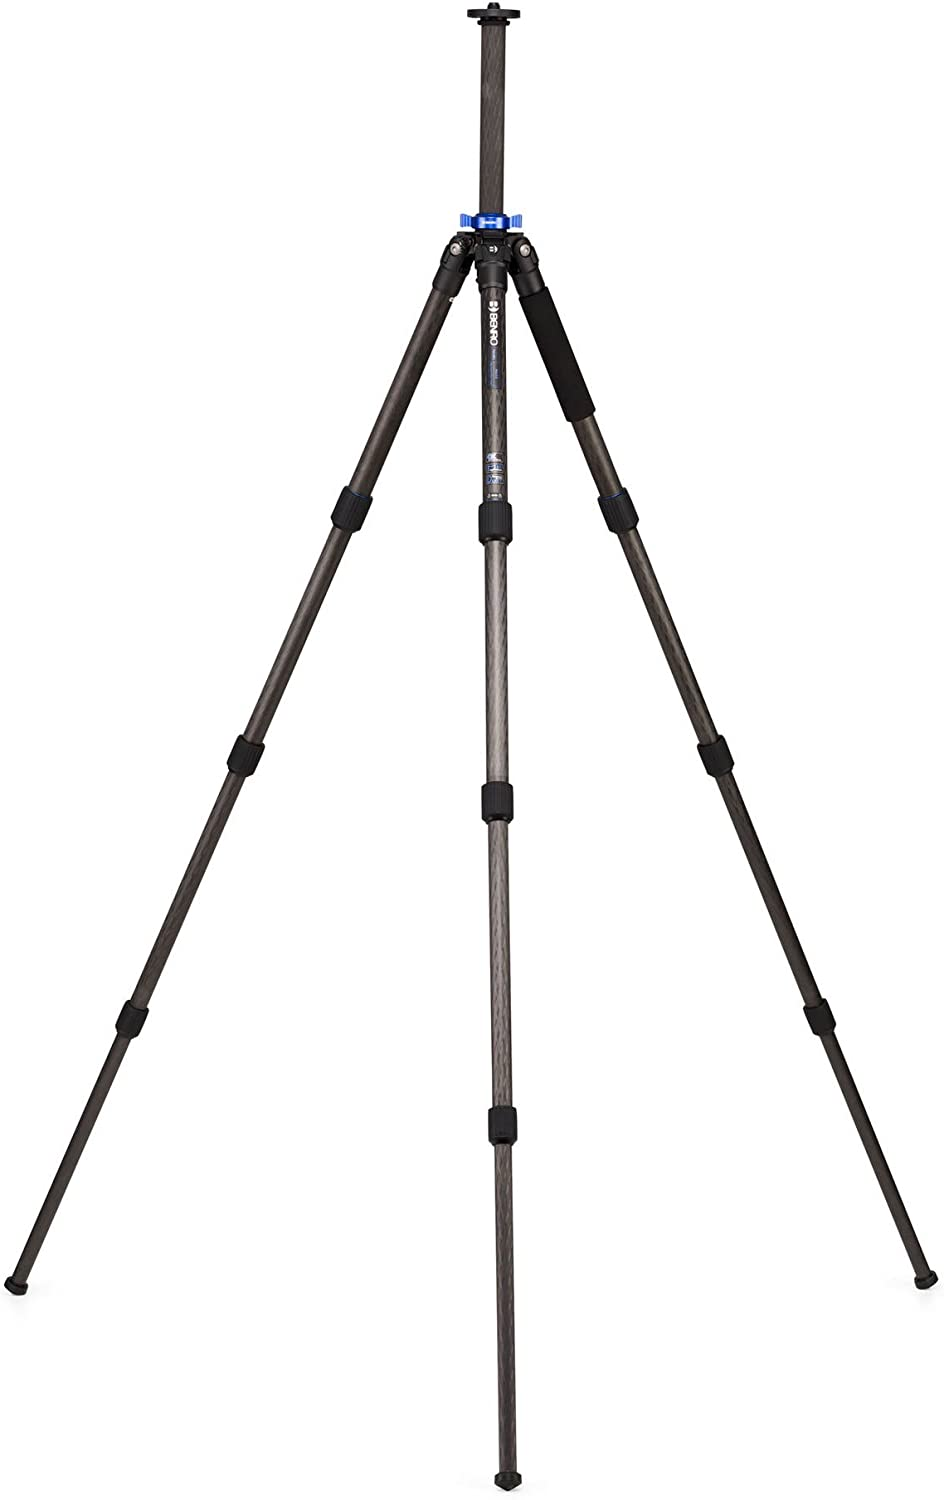 Benro Mach3 Tripod S3 Carb 4 Sect Long